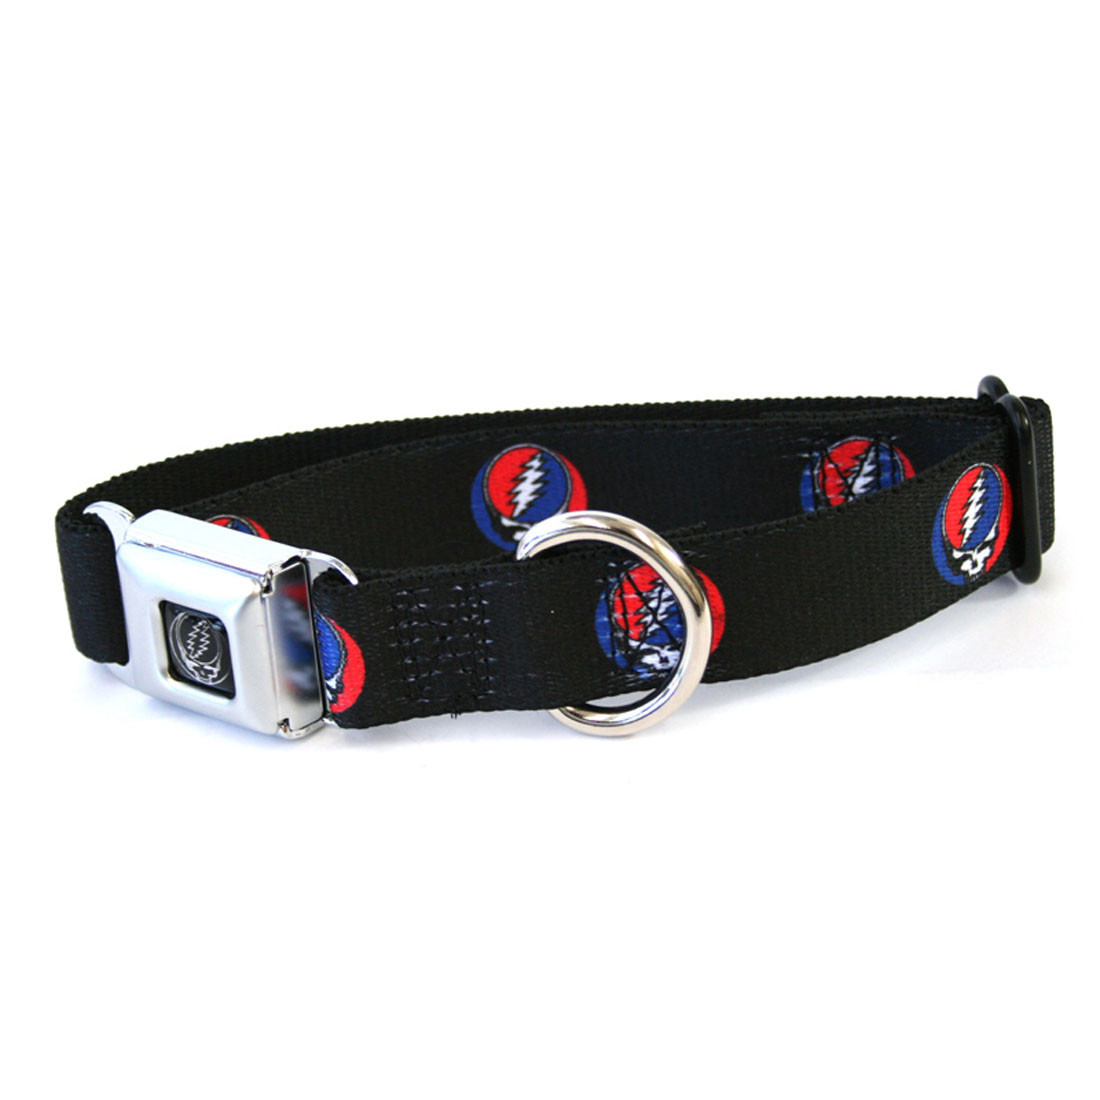 SYF Dog Collar Lg Black